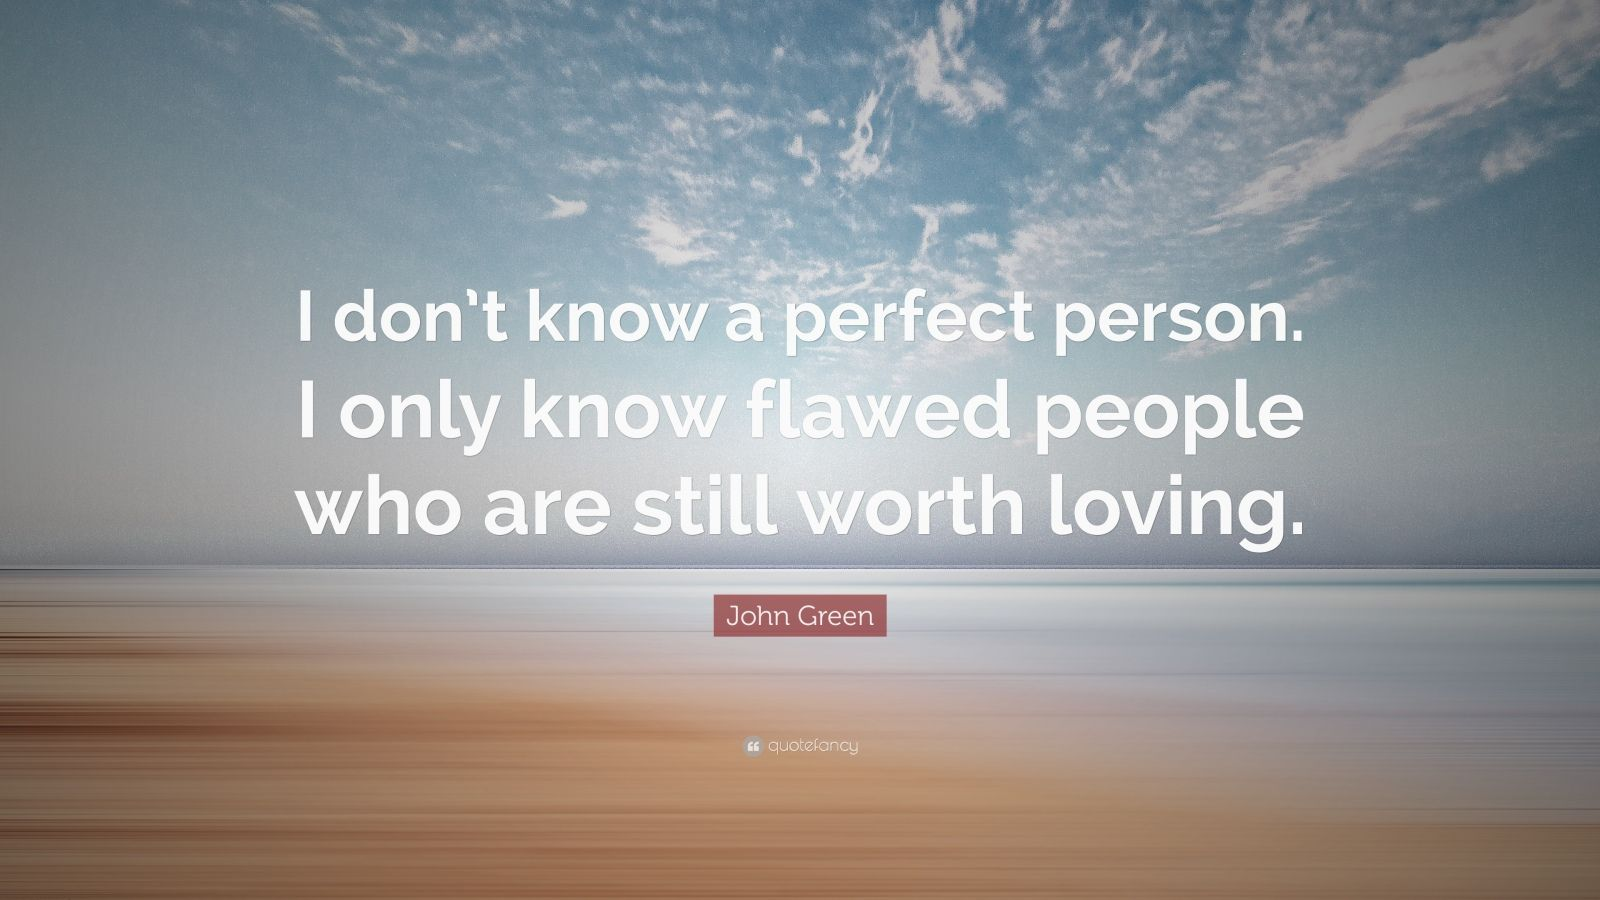 """John Green Quote: """"I don't know a perfect person. I only know flawed people who are still worth loving."""""""